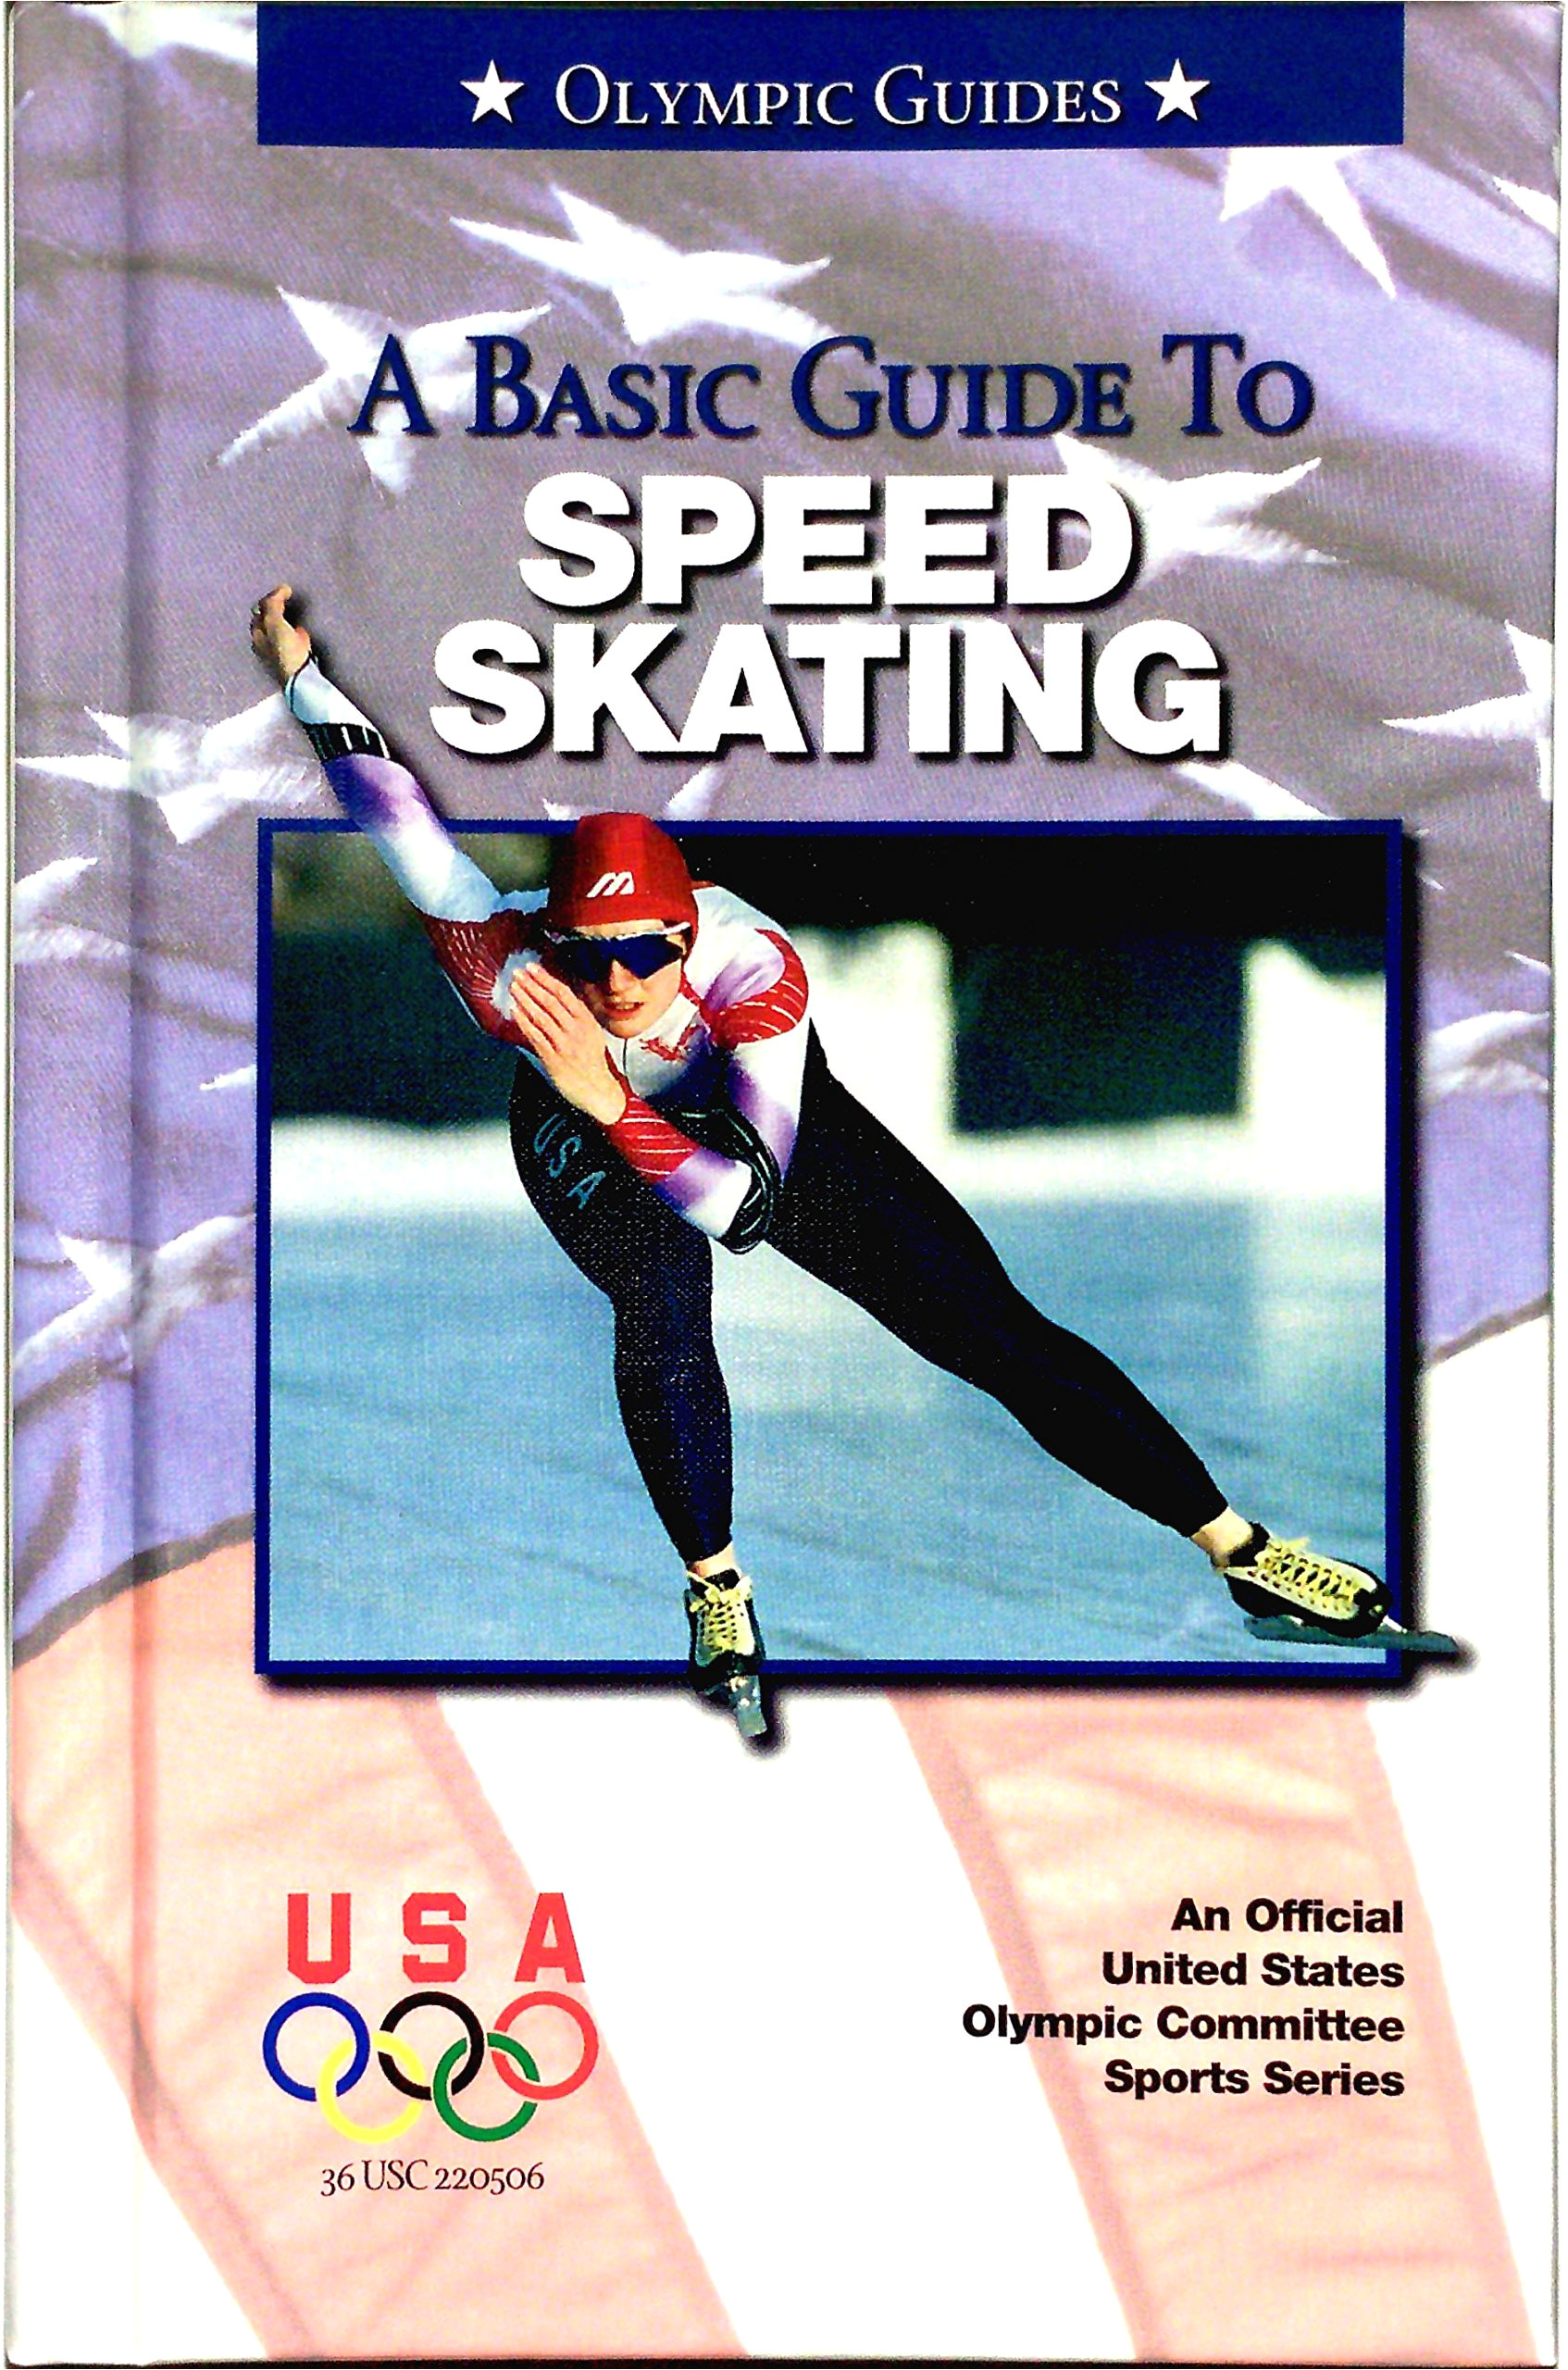 a basic guide to speed skating olympic guides u s olympic committee 9780836831054 amazon com books